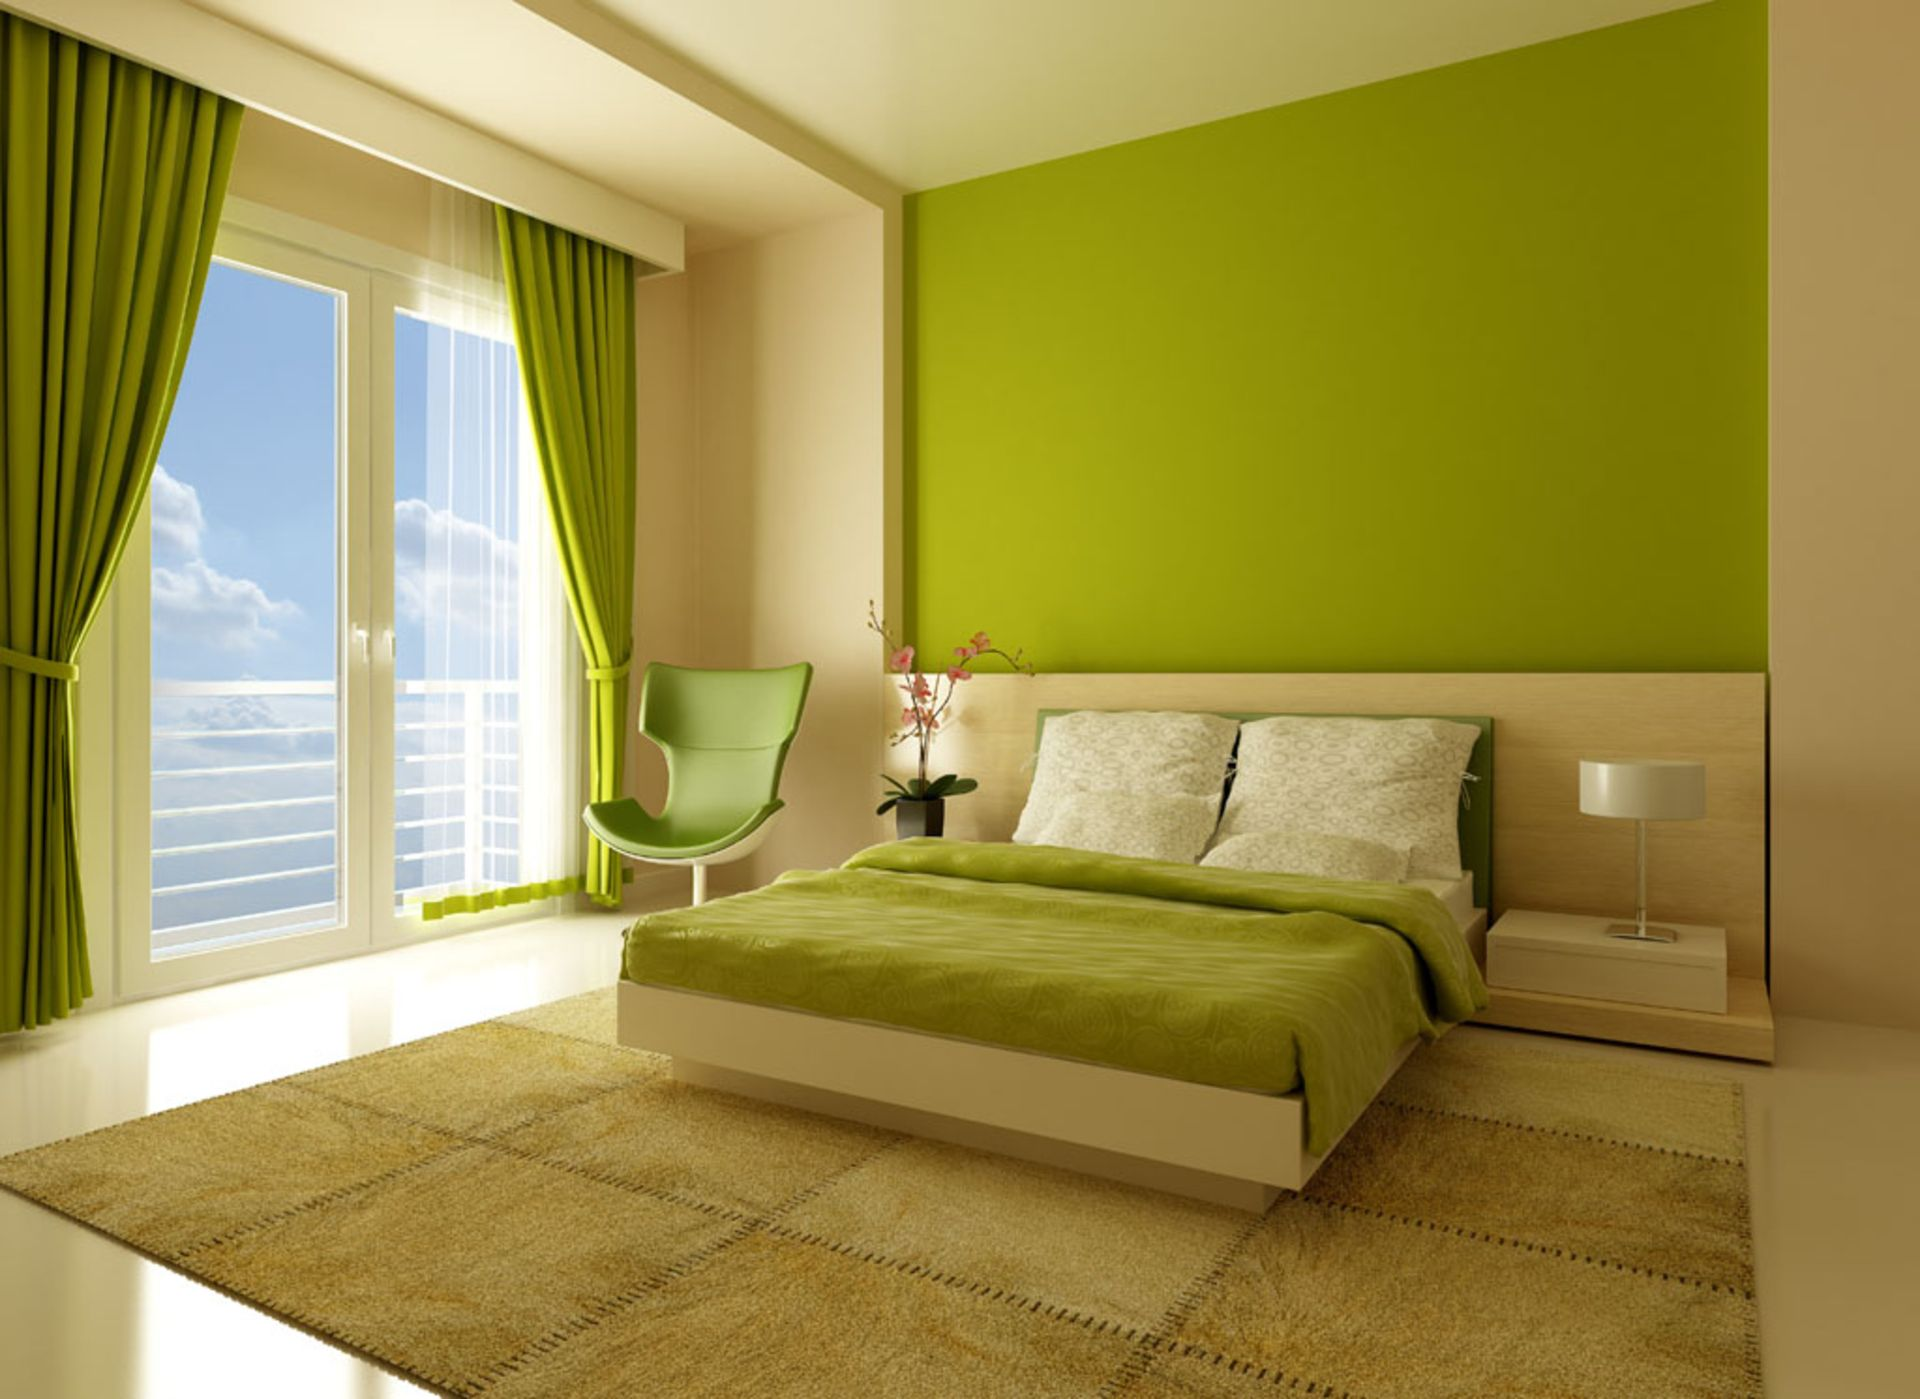 Modern Bedroom Green Design Inspiration 22919 Decorating Ideas | For ...